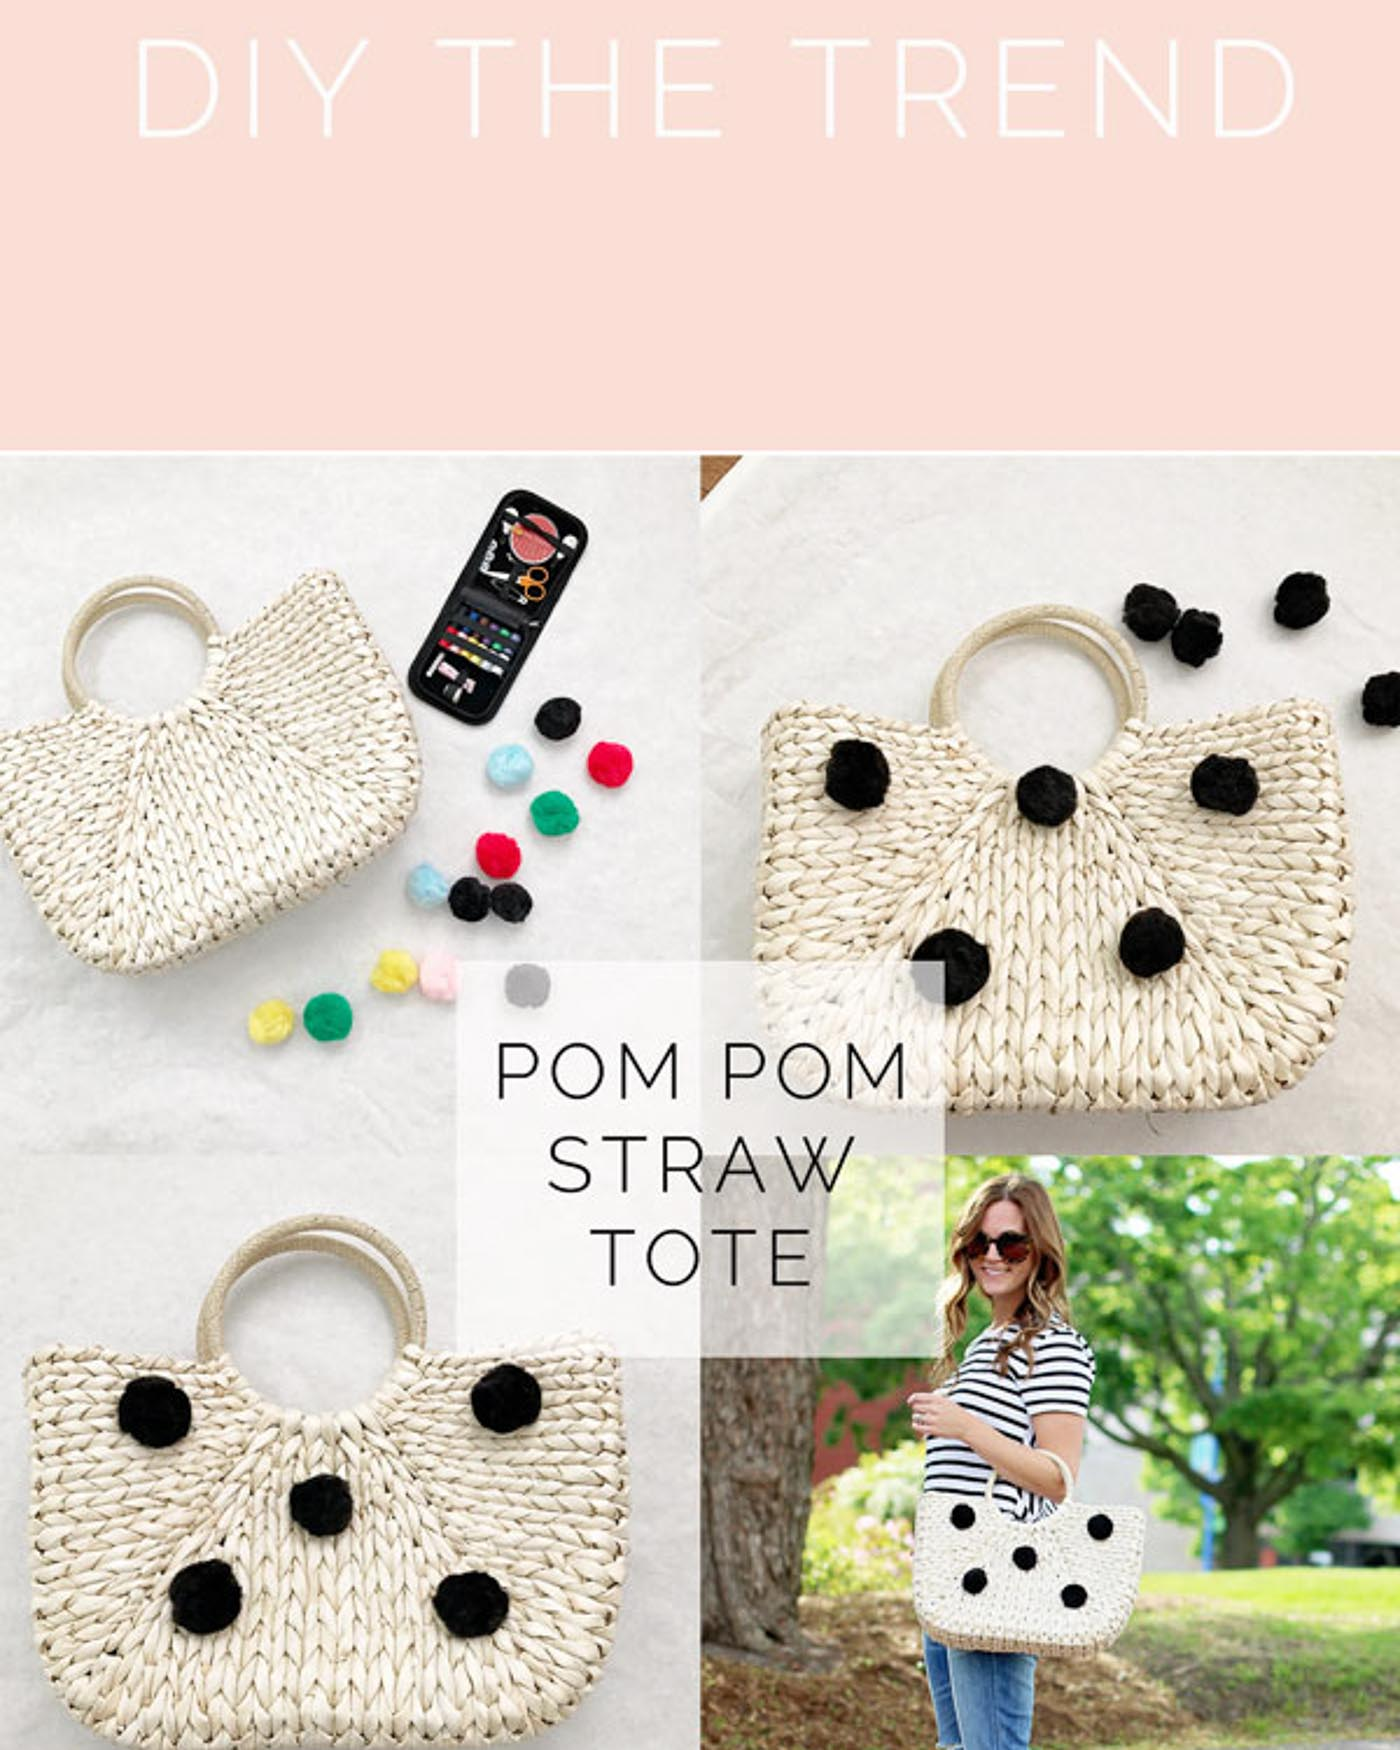 diy pom pom straw tote - The Blog Societies